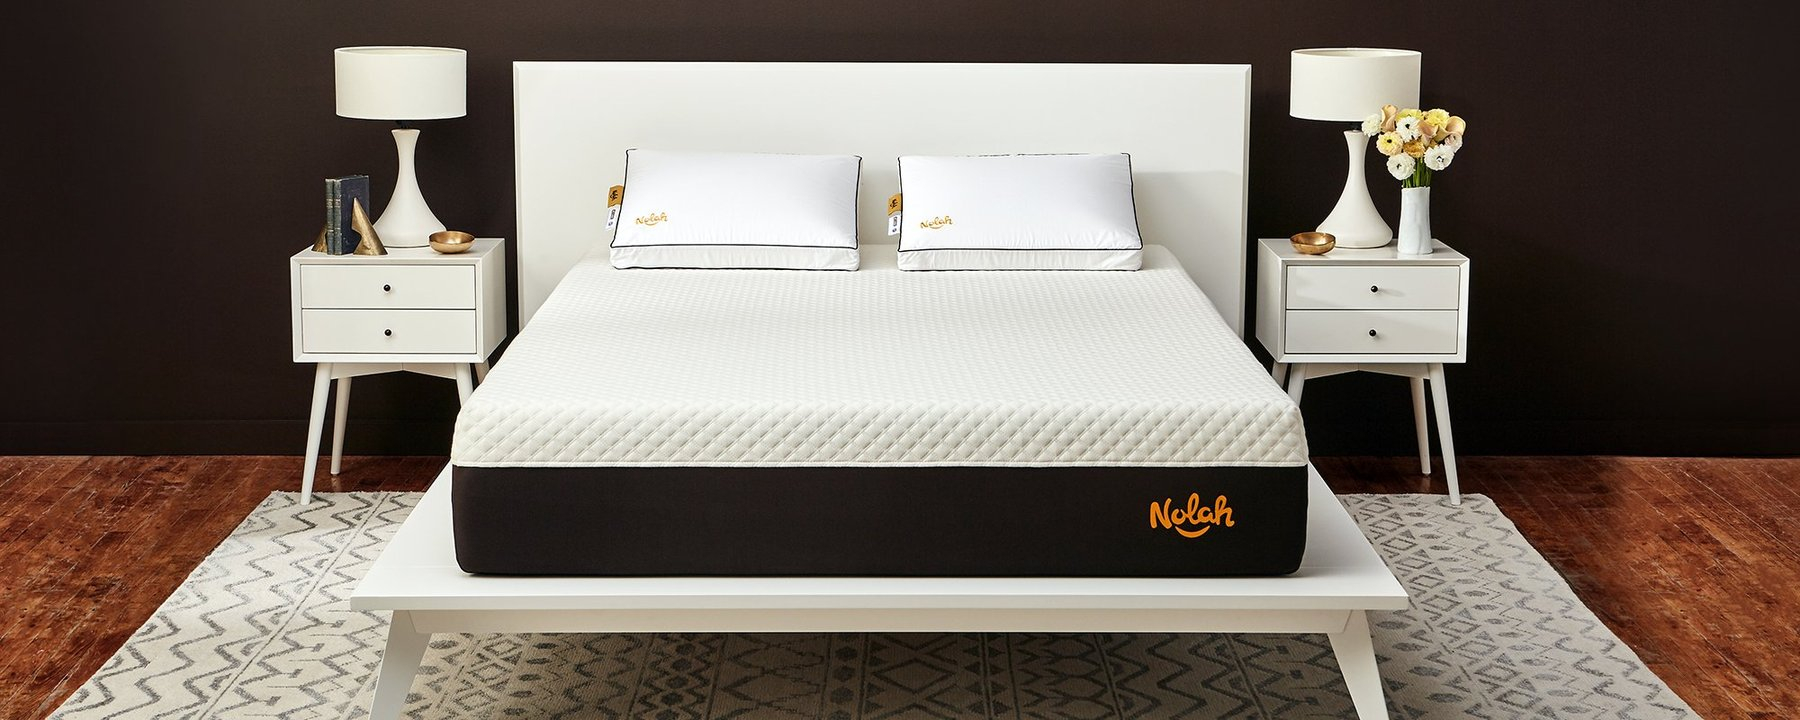 1570544117 264 the nolah sleep mattress review is it a good fit for you - The Nolah Sleep Mattress Review: Is It a Good Fit for You?